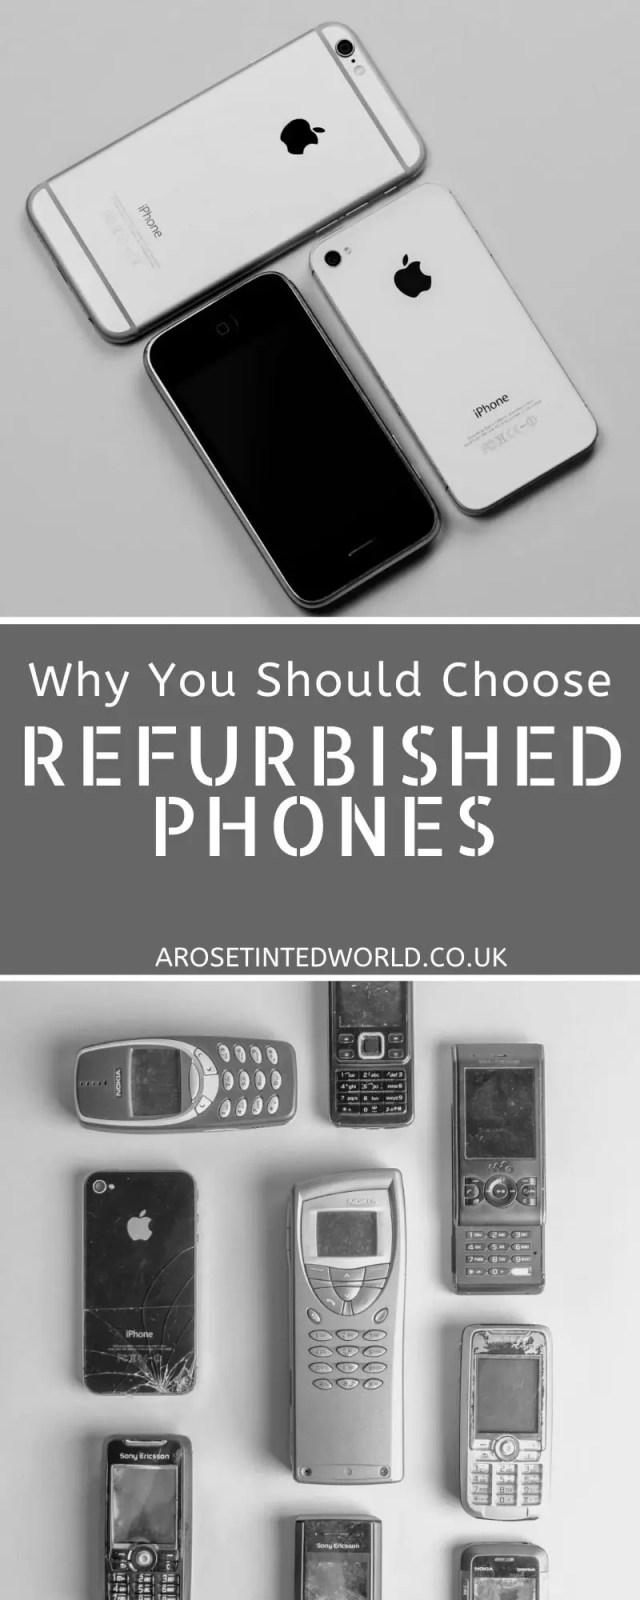 Why You Should Choose Refurbished Phones - Choosing to buy used or refurbished tech can save you money & is far more sustainable. See how you can save money by buying second hand tech. Why second hand does not always mean used. Why 'as new' or 'nearly new' may never have been used. And what to do with your old tech to be more ecofriendly. #sustainableliving #oldphones #refurbished #sustainability